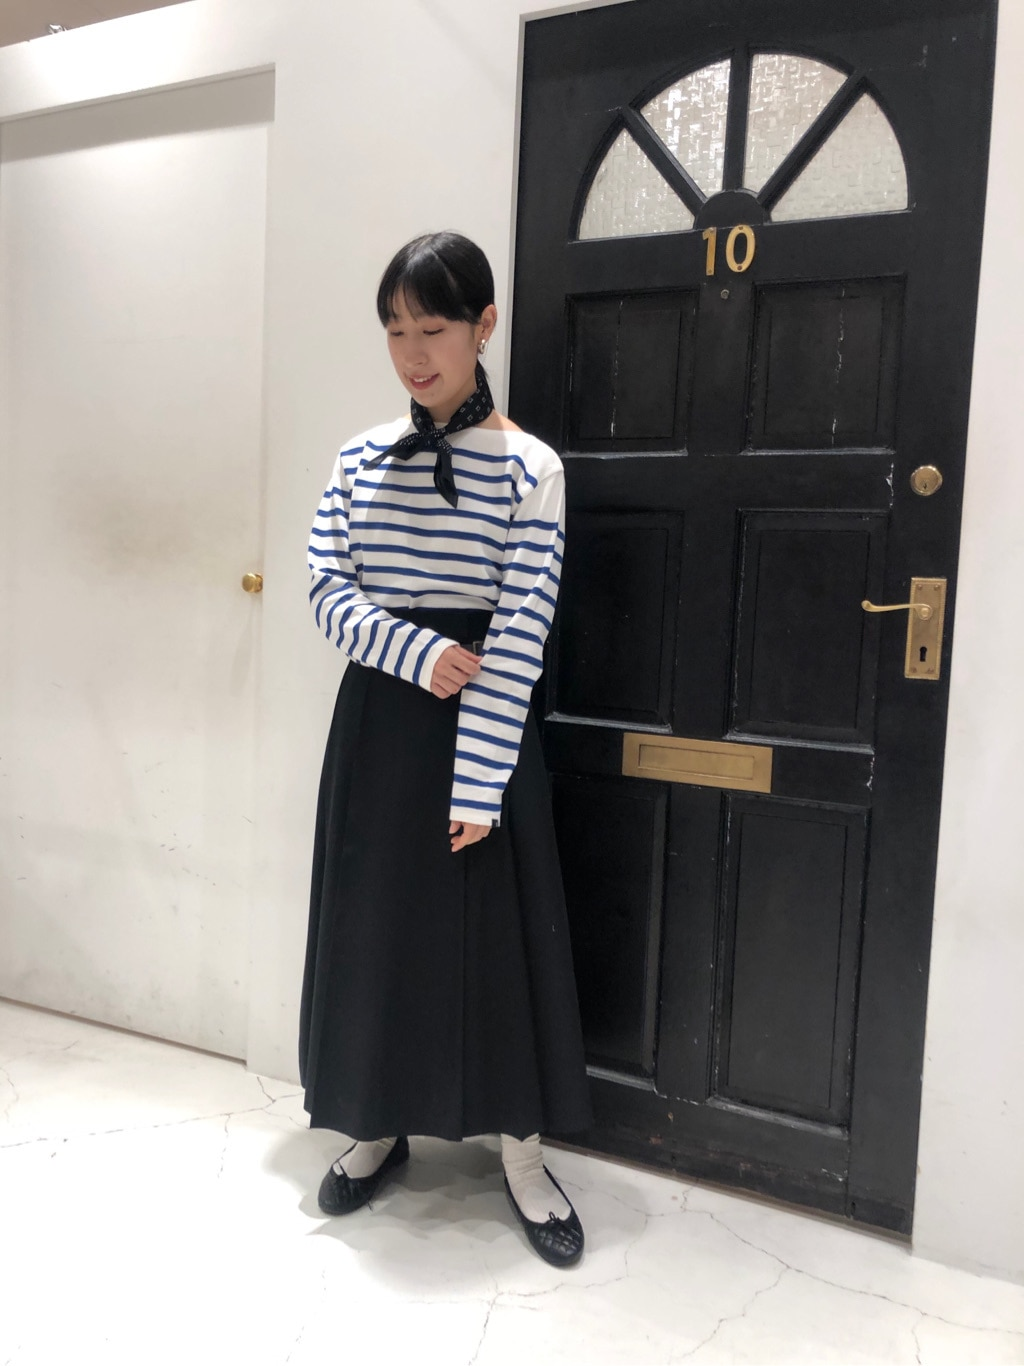 Dot and Stripes CHILD WOMAN ルクアイーレ 身長:151cm 2021.02.17